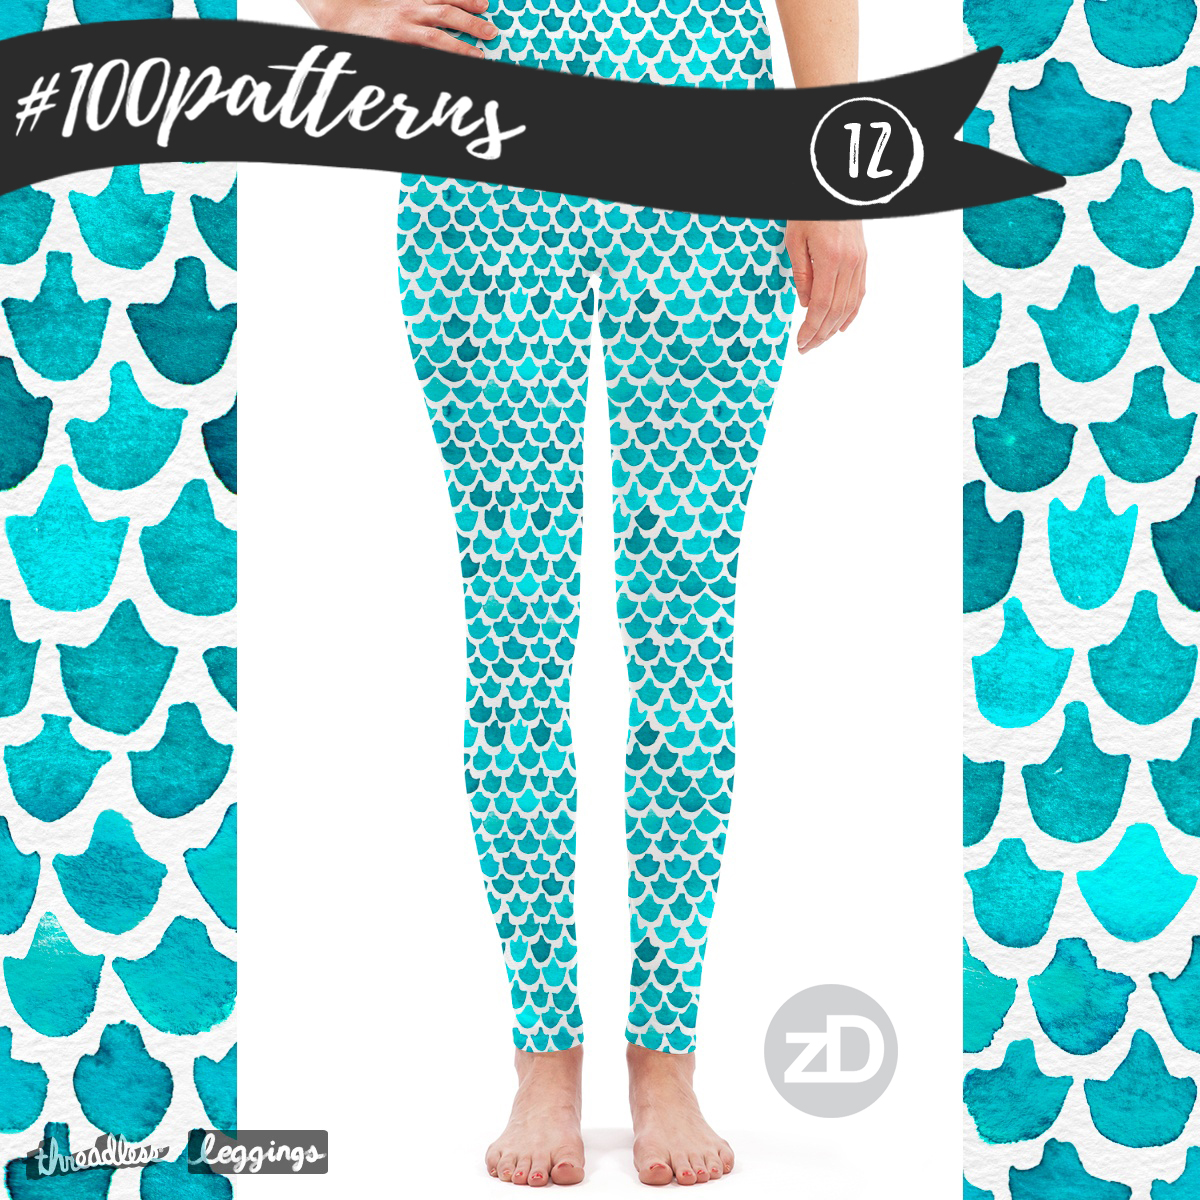 Zirkus Design | Indigo Vibes Summer Watercolor Surface Pattern Design Collection : Turquoise Mermaid Leggings Threadless Mockup